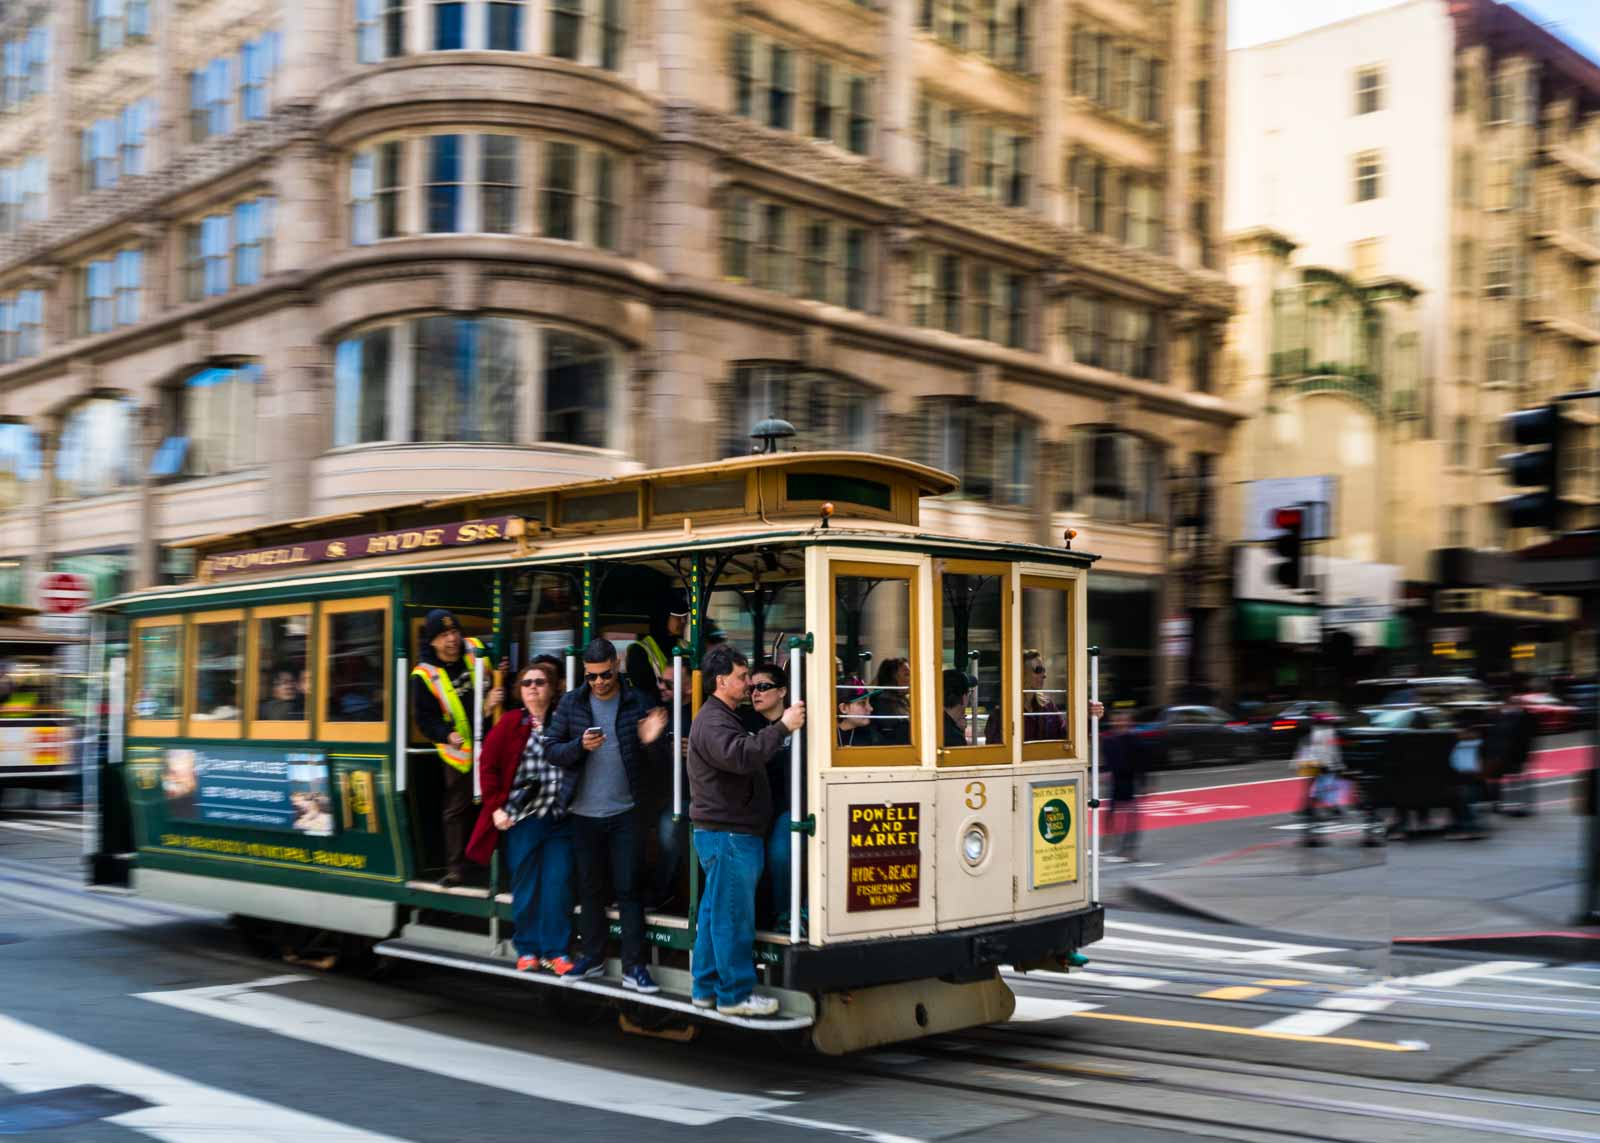 Creative photography technique of panning on a streetcar by Kathy Linford